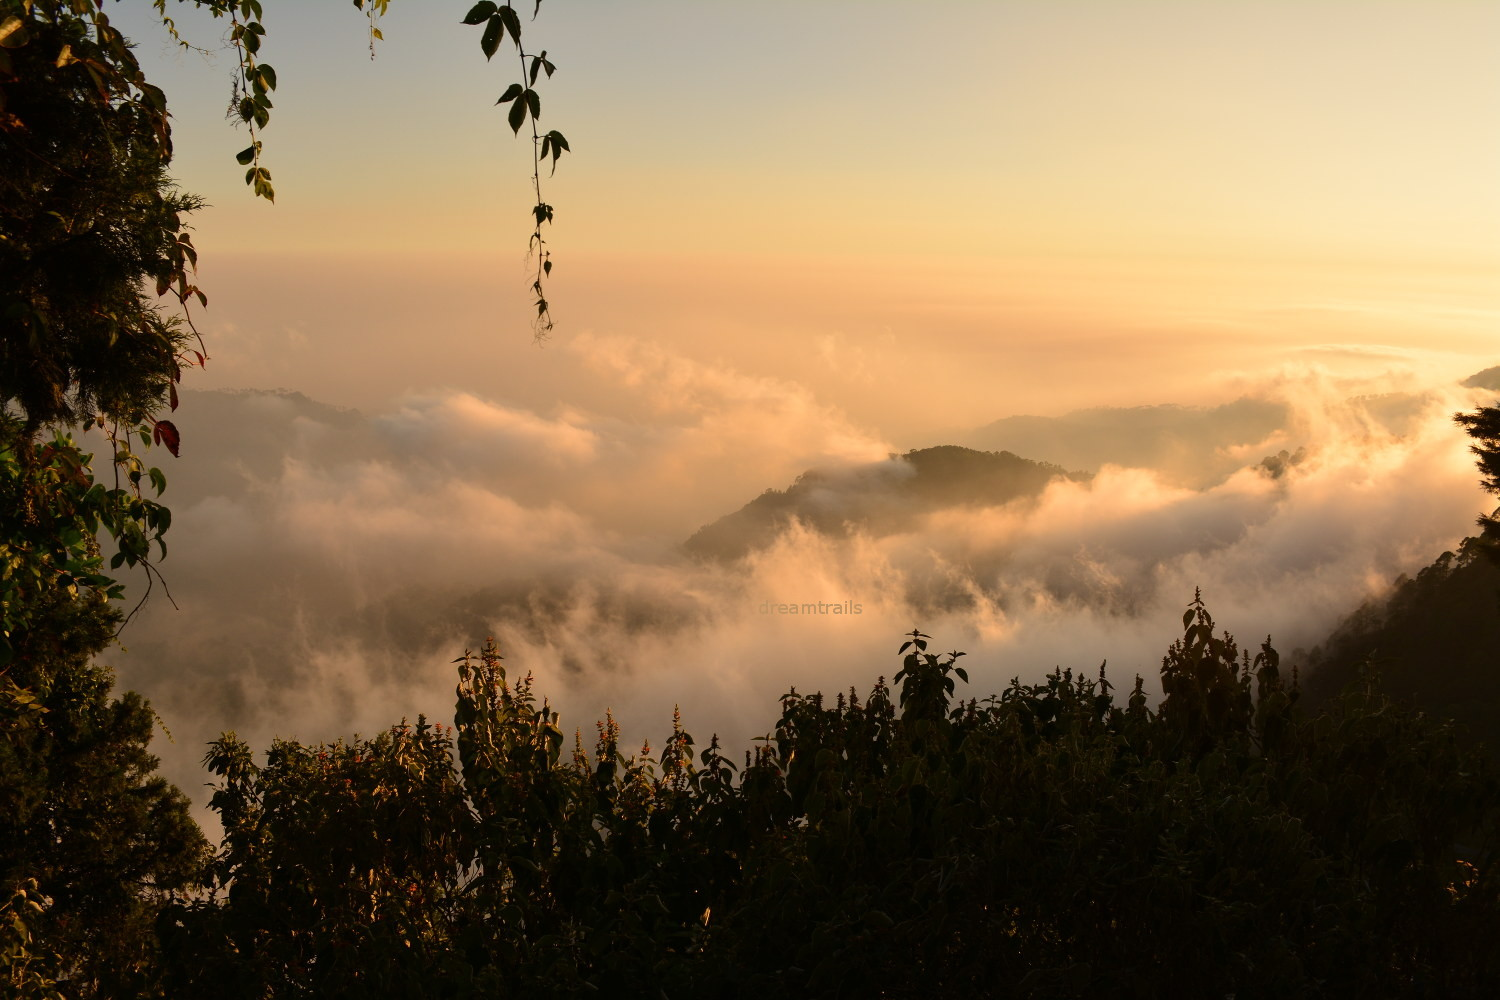 Cloud View Point, Nainital, Uttarkhand